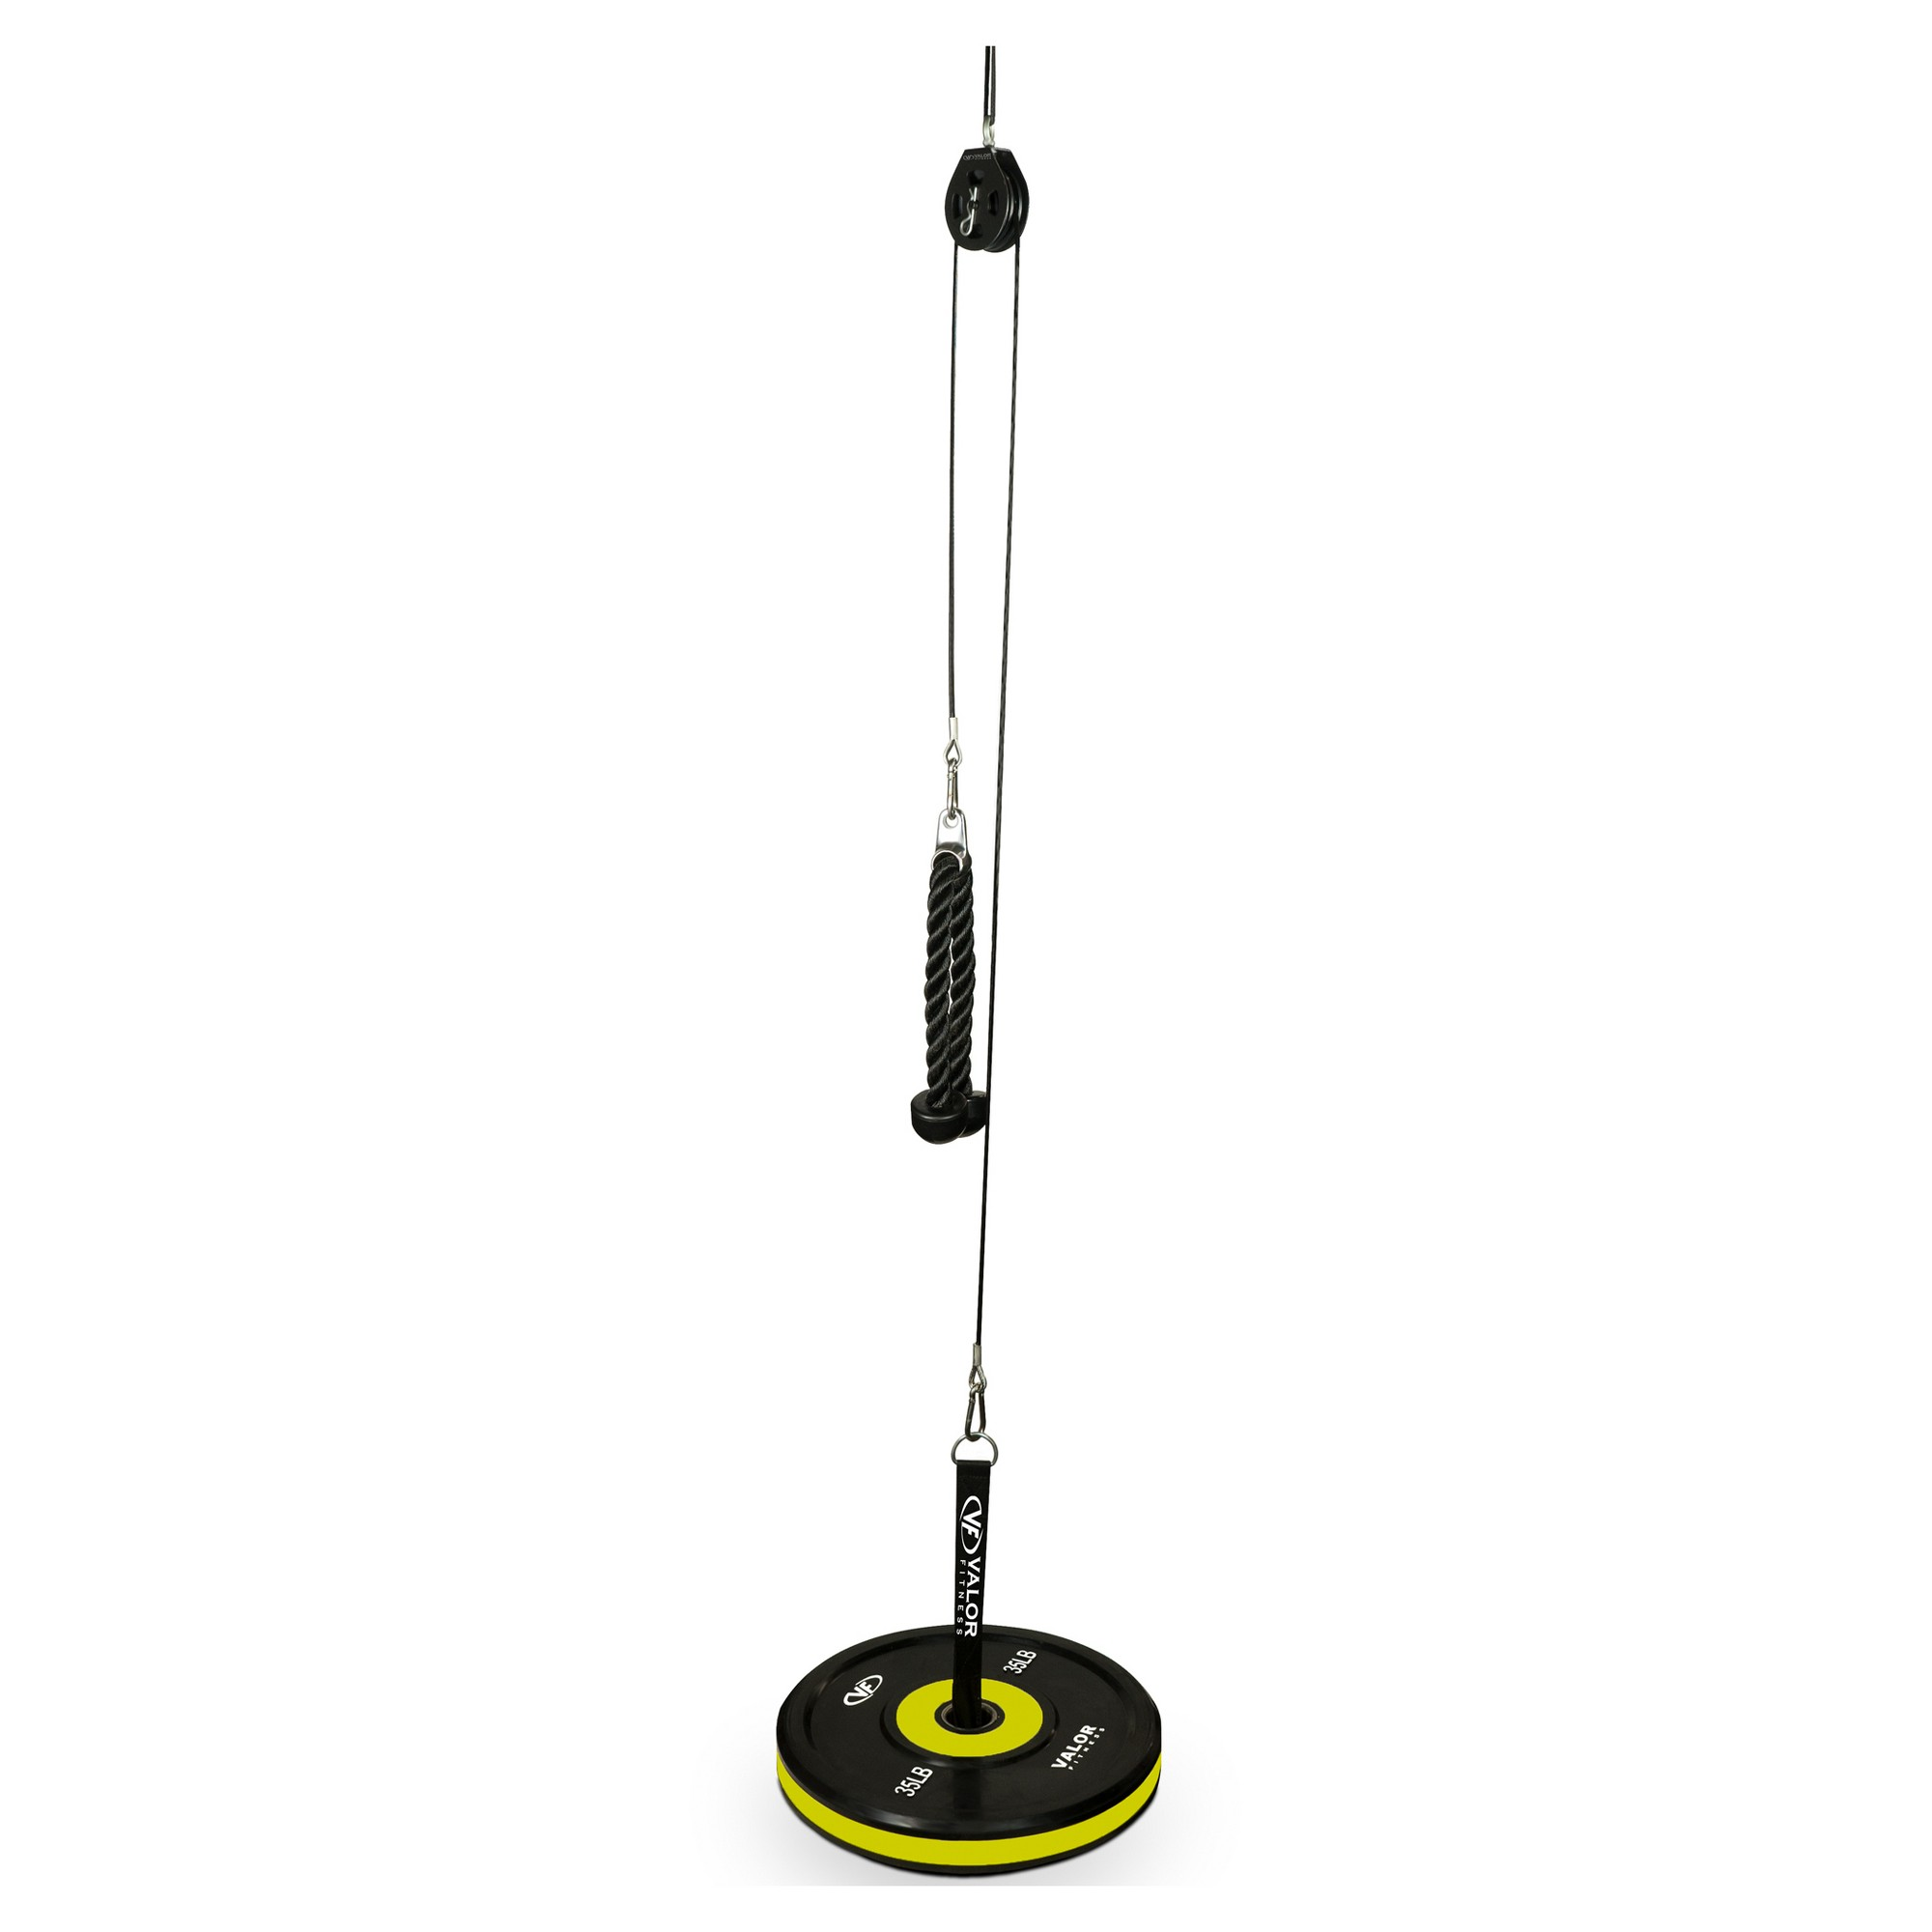 Valor Fitness PY1 Pulley Cable Station Cable workout